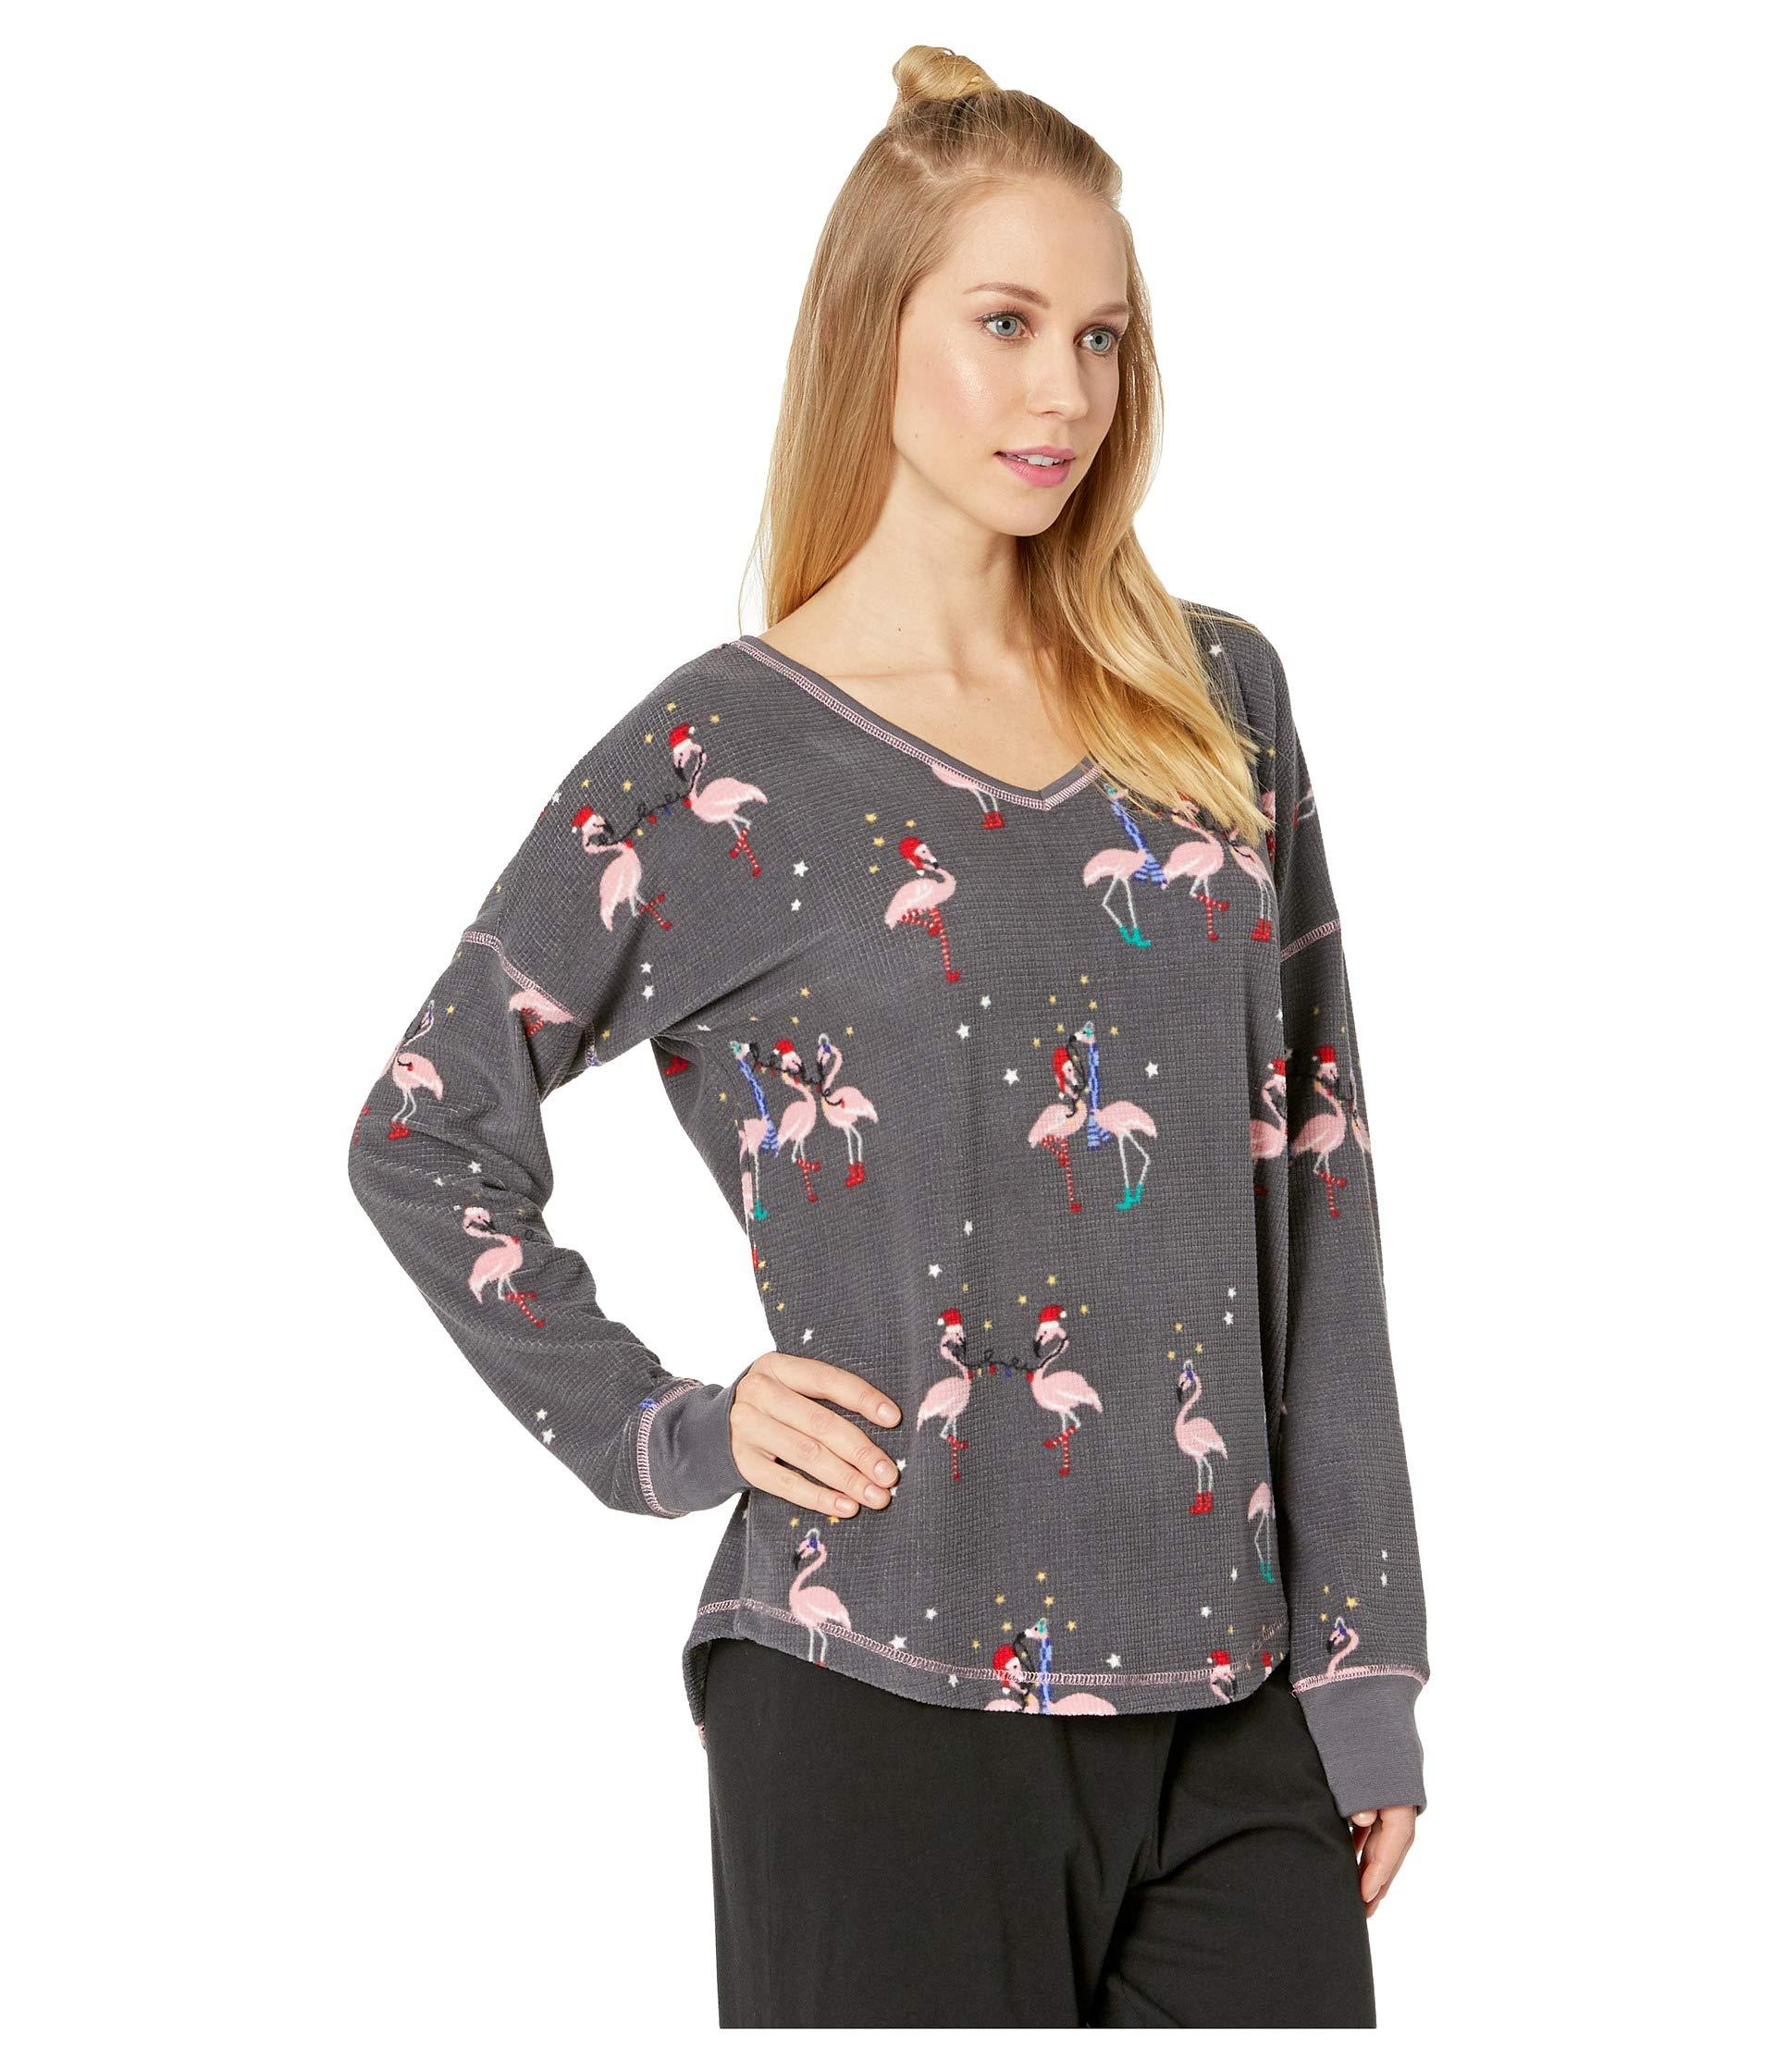 d3b1af7994 Lyst - Pj Salvage Let's Flamingo Thermal in Gray